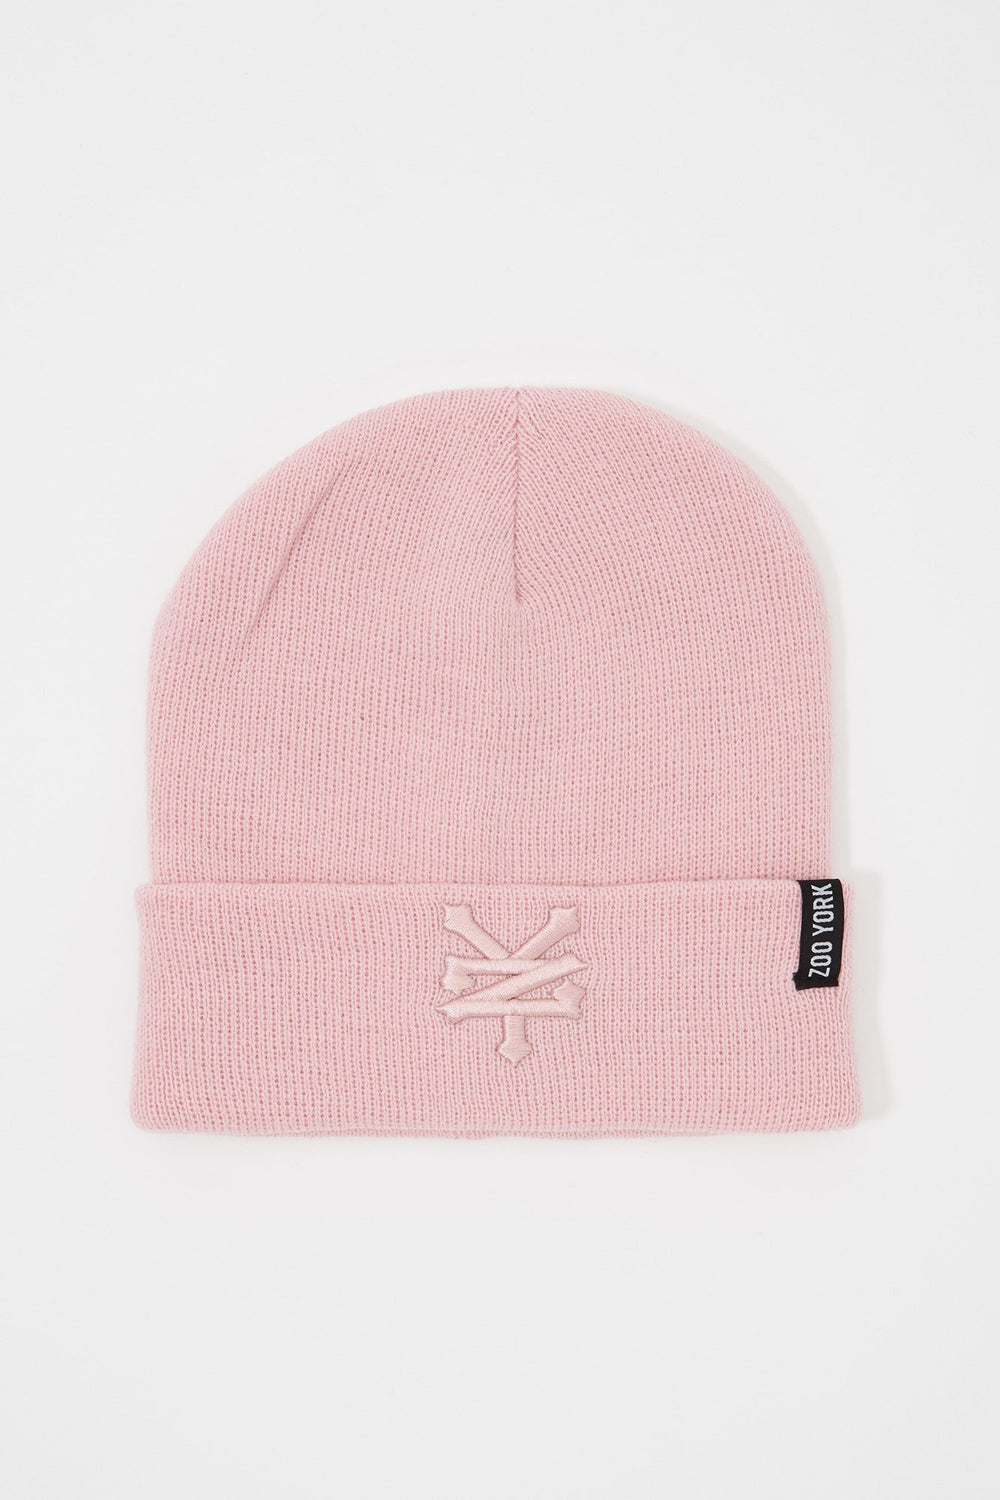 Zoo York Mens Embroidered Beanie Pink